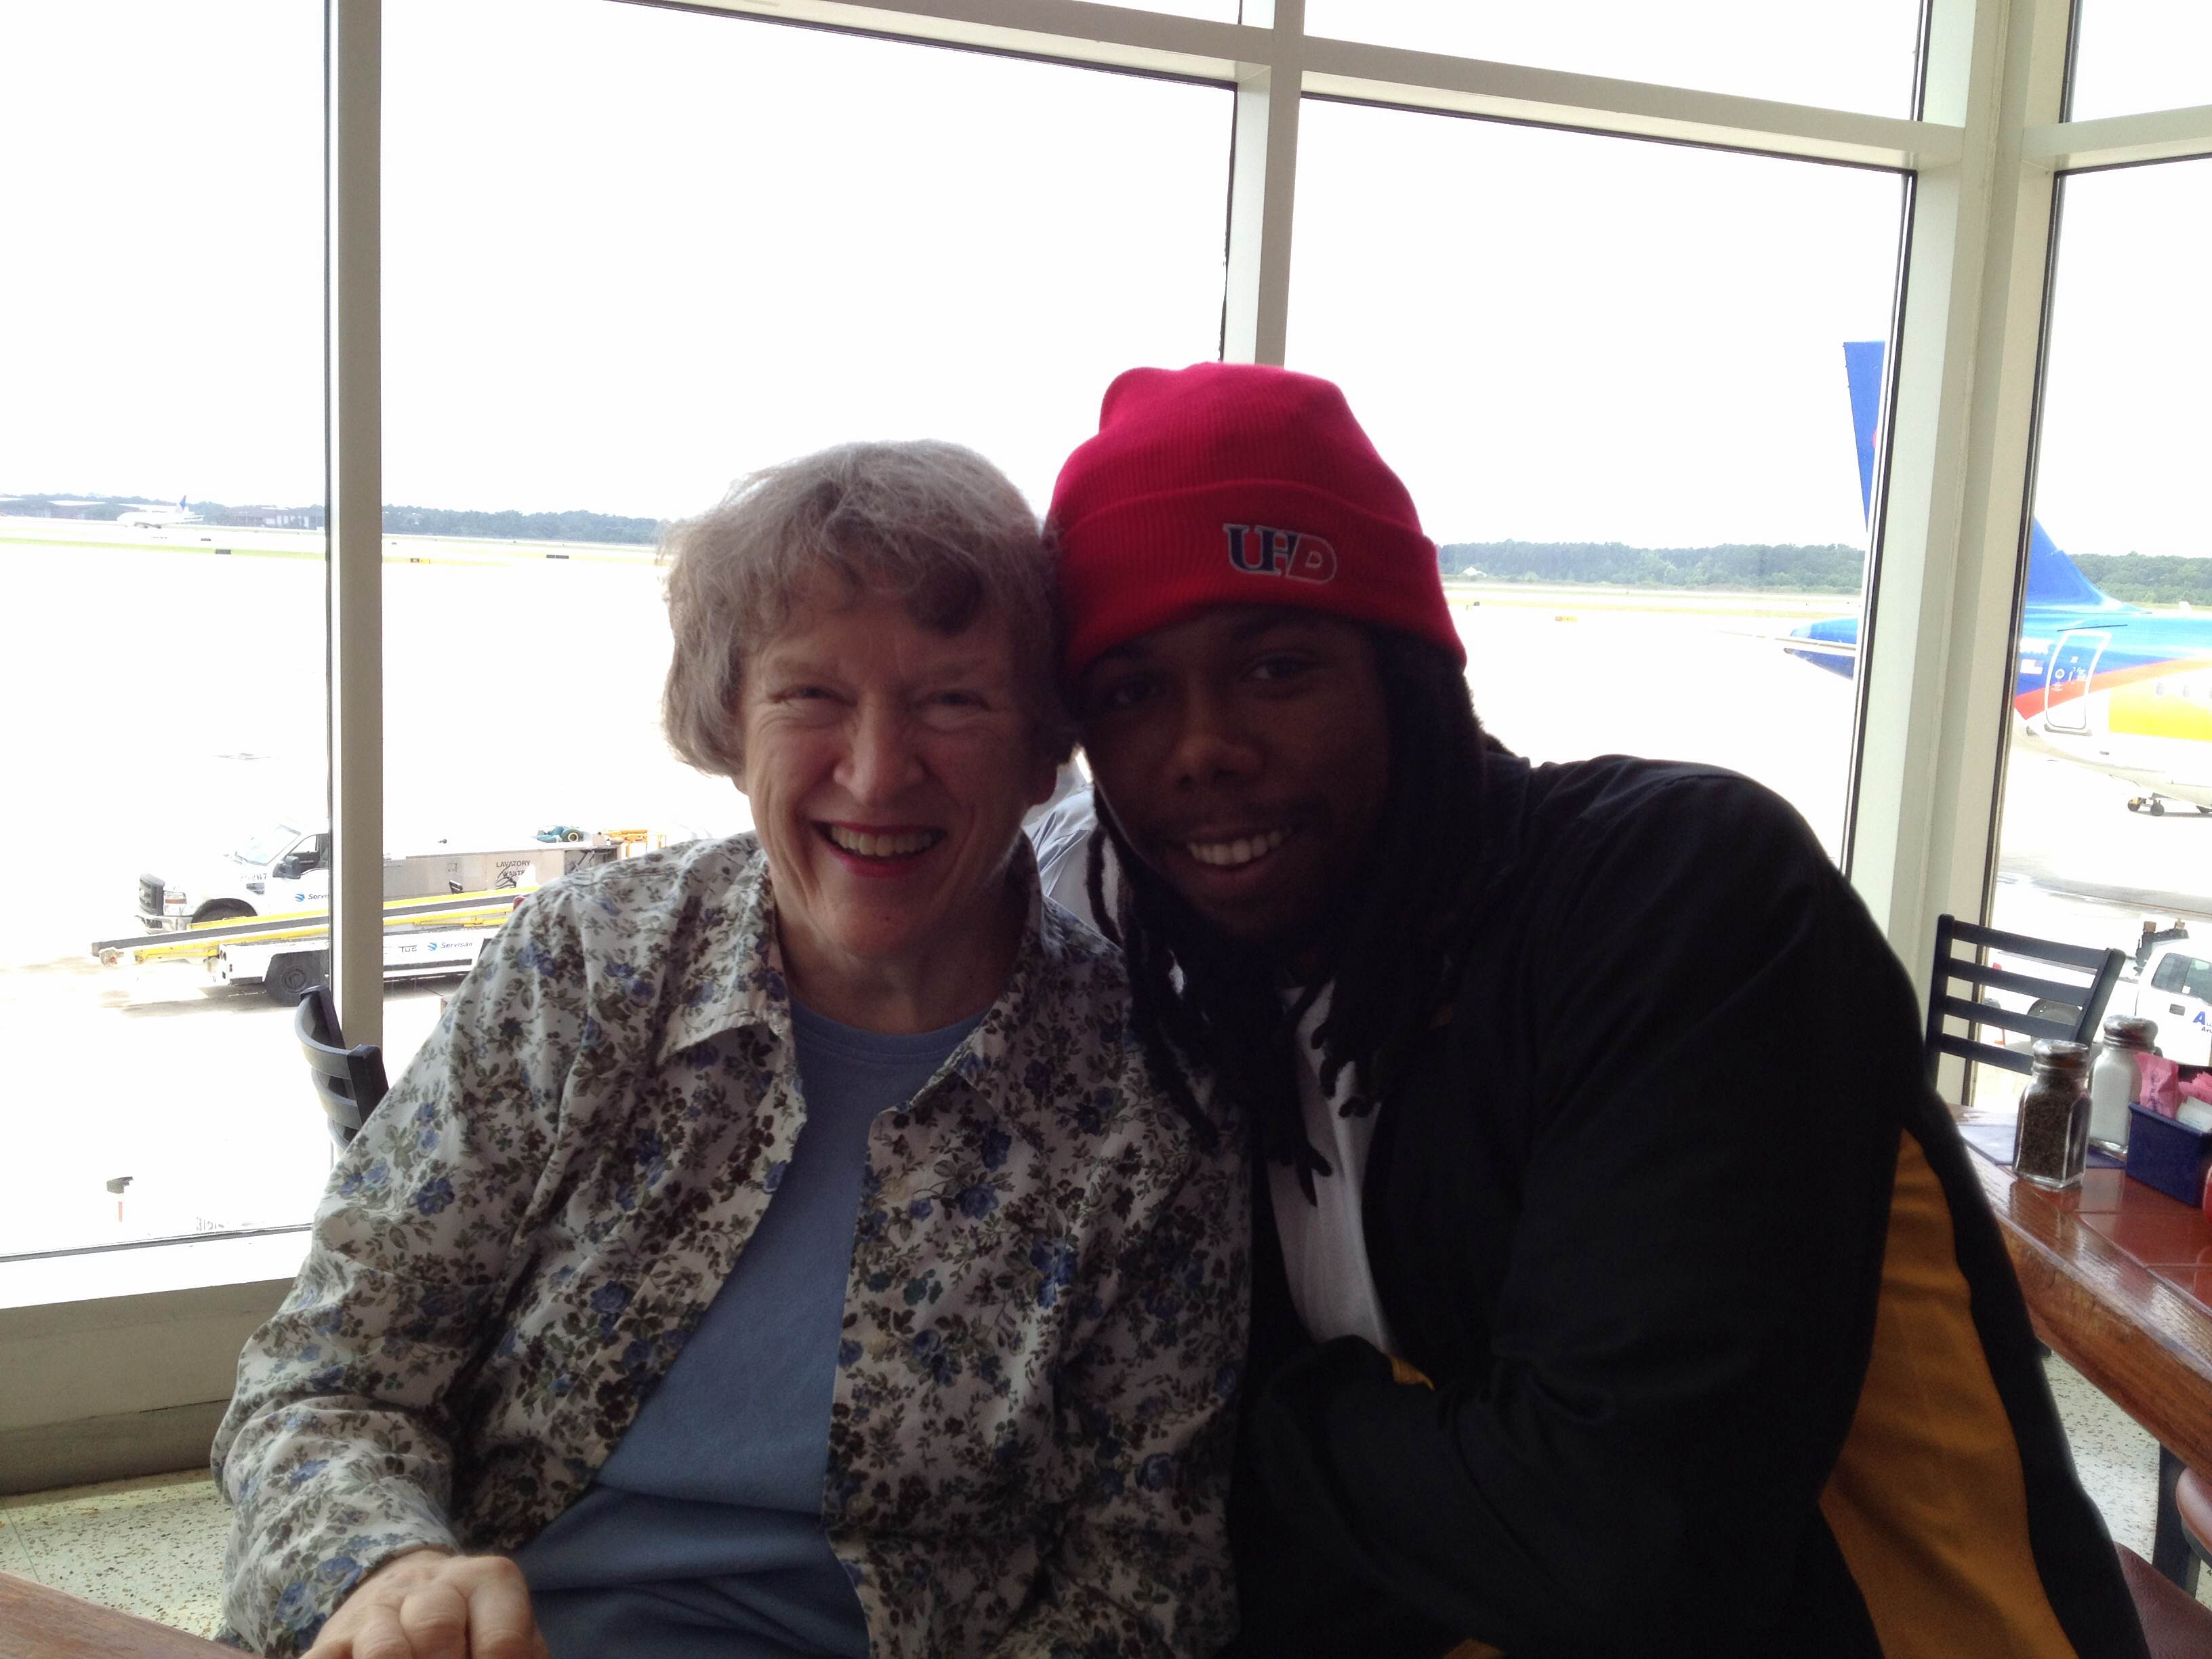 Director Kate Pogue poses with a student at the airport.